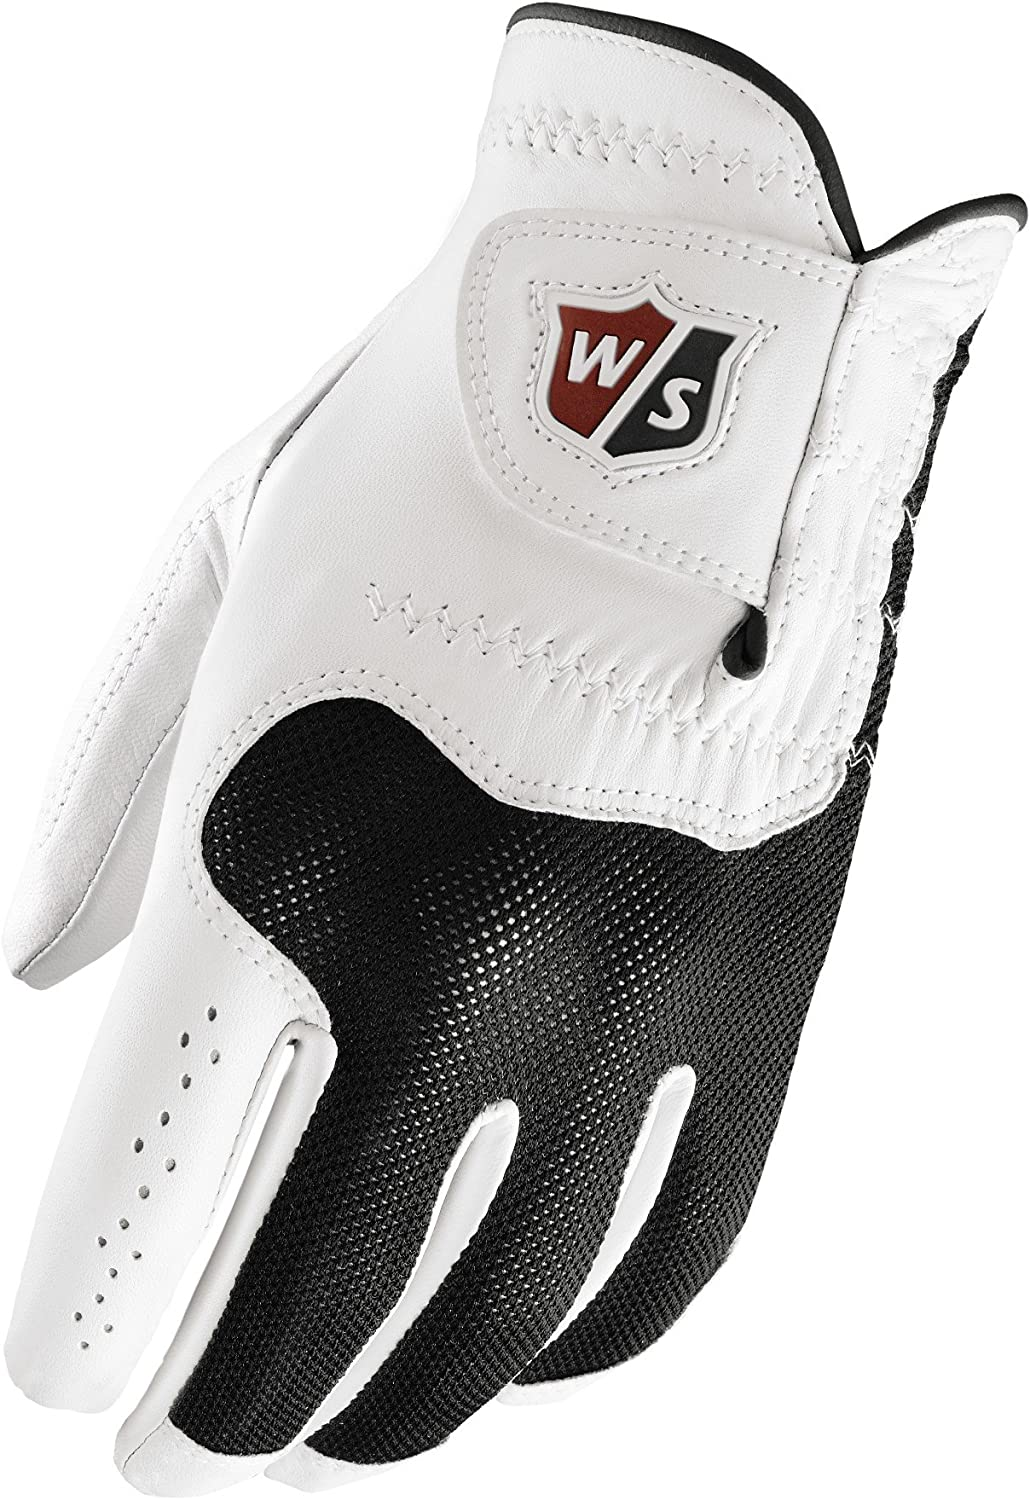 Wilson Sporting Goods Staff Conform Golf Glove, White, Large, Right Hand